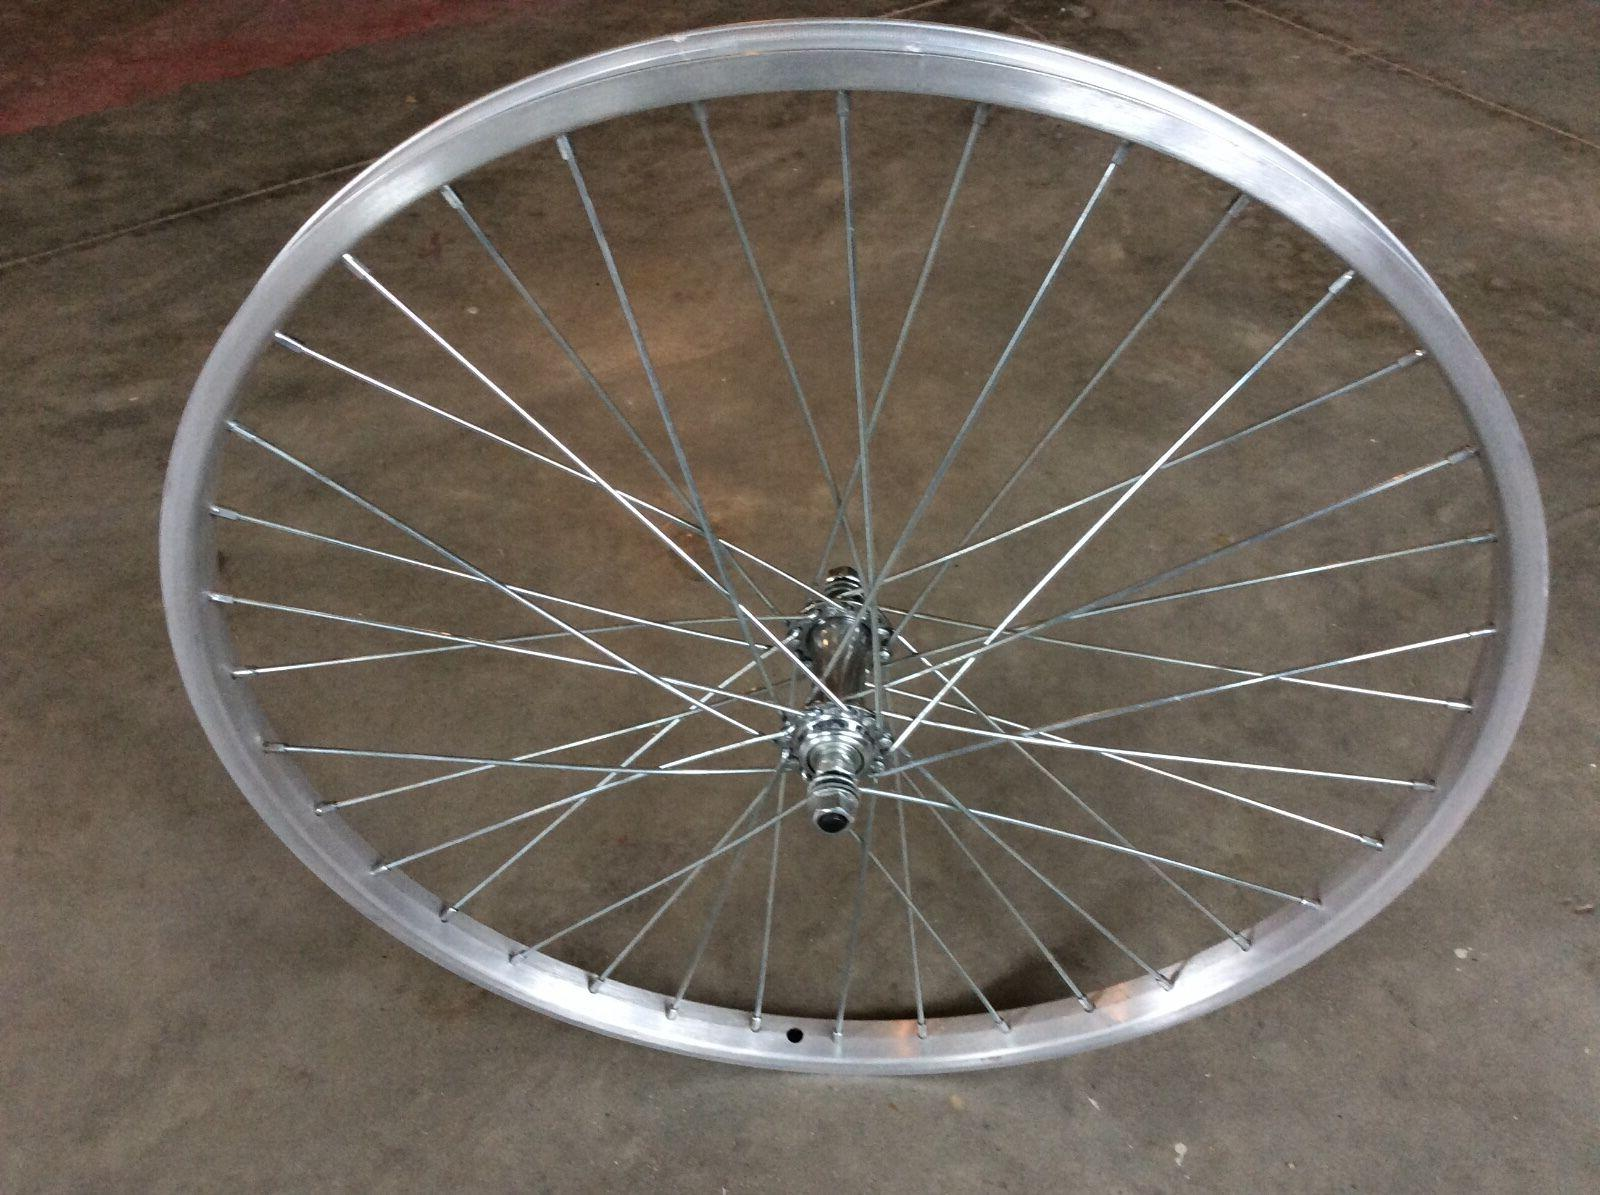 24 inch aluminum bicycle rim in new condition